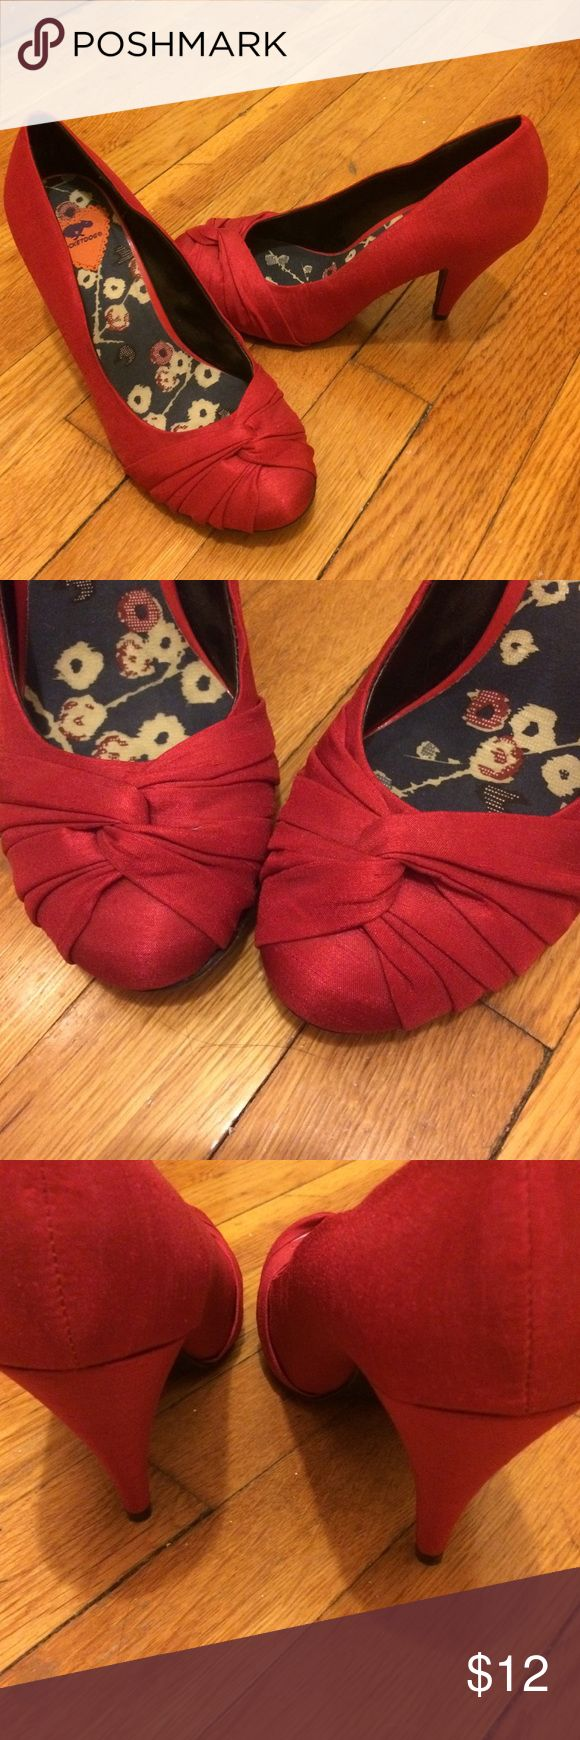 Rocket Dog Red Pumps Red Rocket Dog Pumps. About 2-3 inch heel. Soles in great condition only worn like once. Rocket Dog Shoes Heels